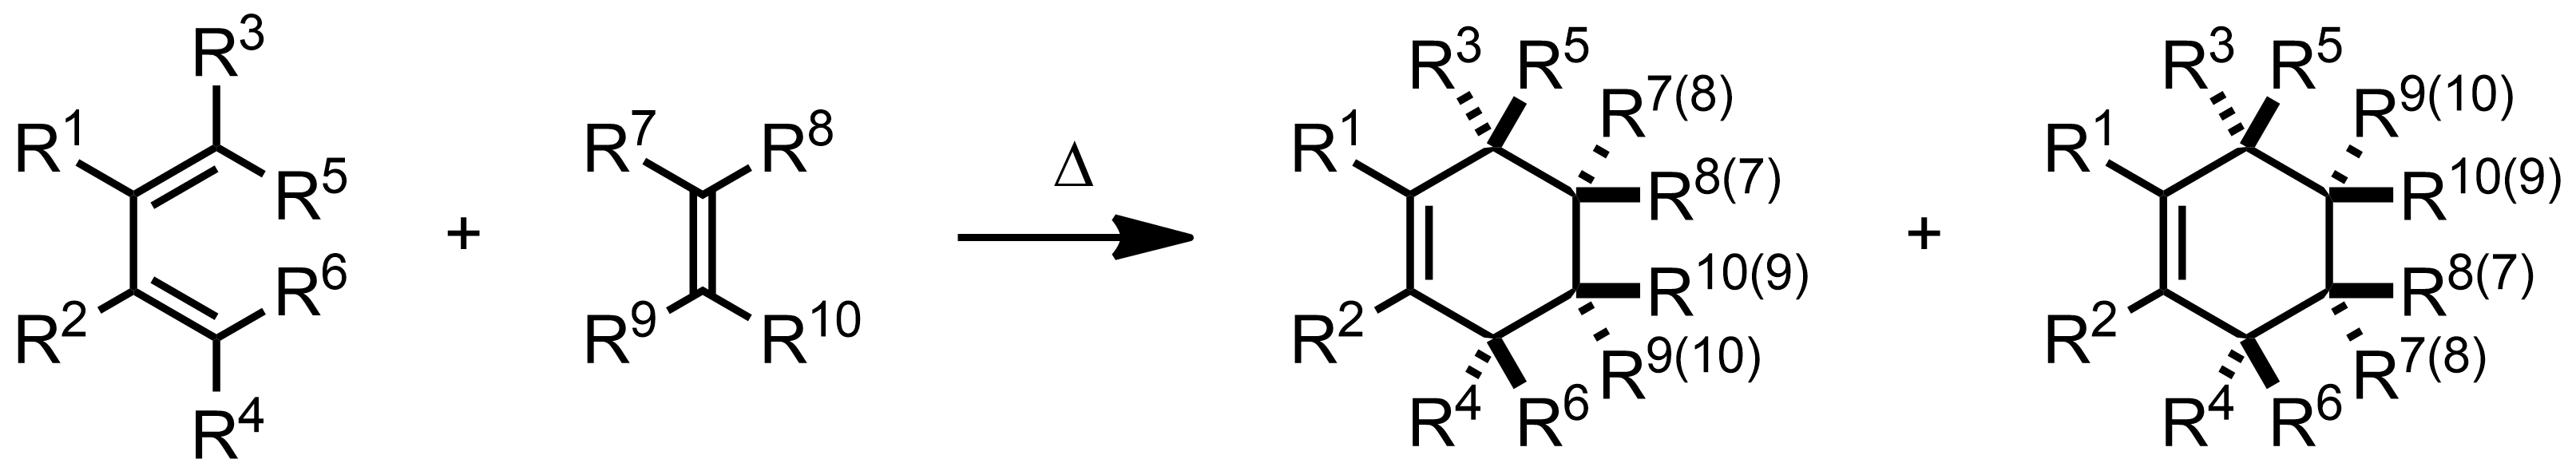 Schematic representation of the Diels-Alder Reaction.